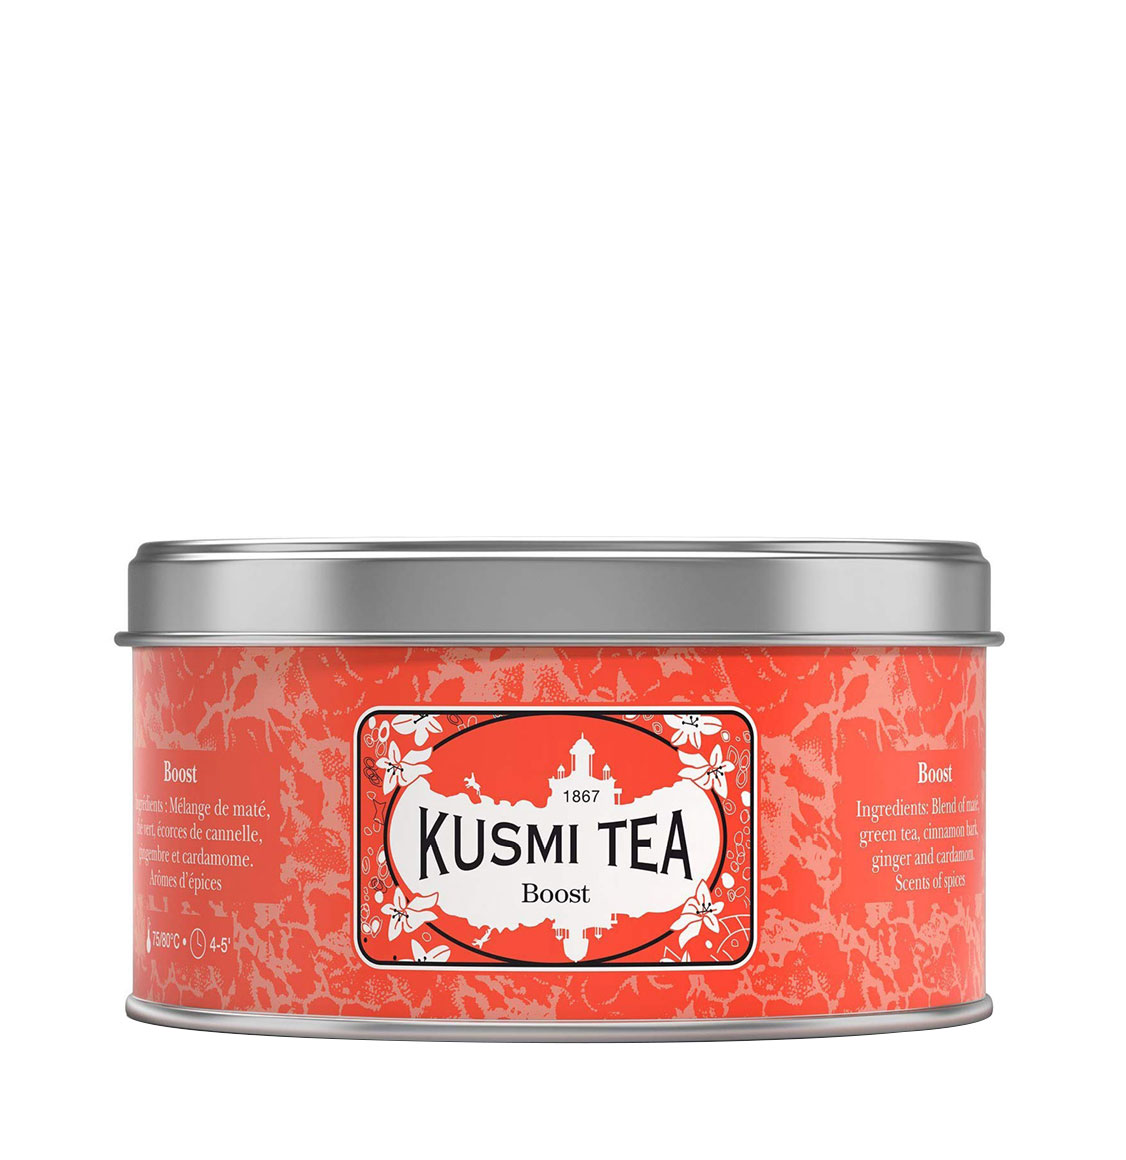 Kusmi Tea Boost Wellness 125g